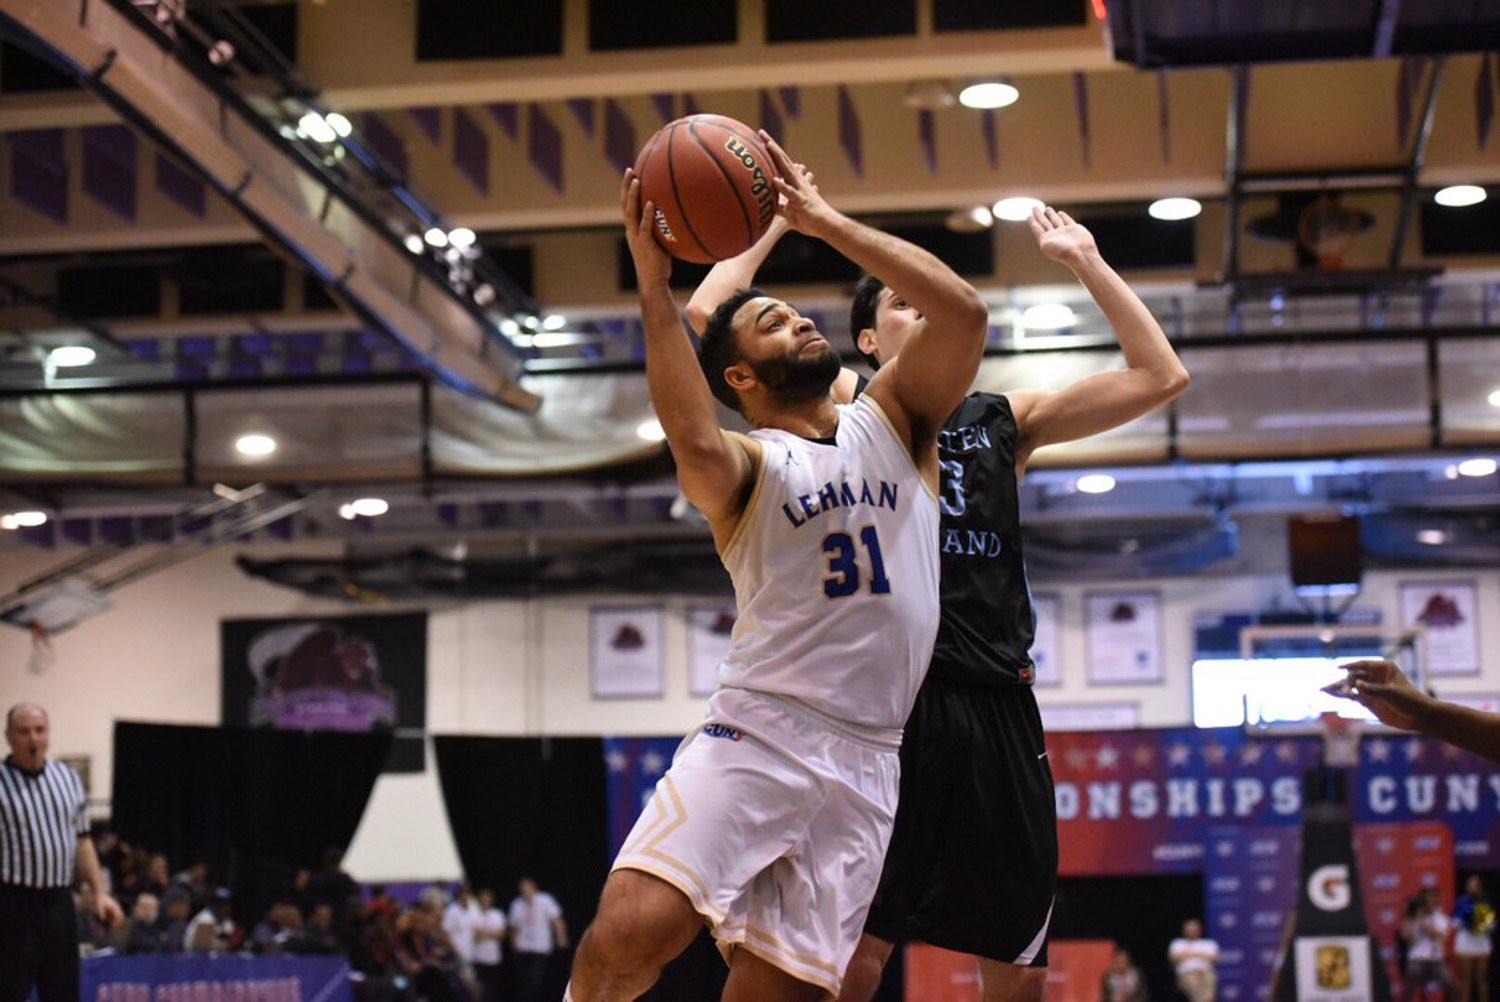 Lehman's Andrew Utate poured in 24 points in the CUNYAC title game versus Staten Island, but it wasn't enough as the Lightning dropped a 77-75 decision.